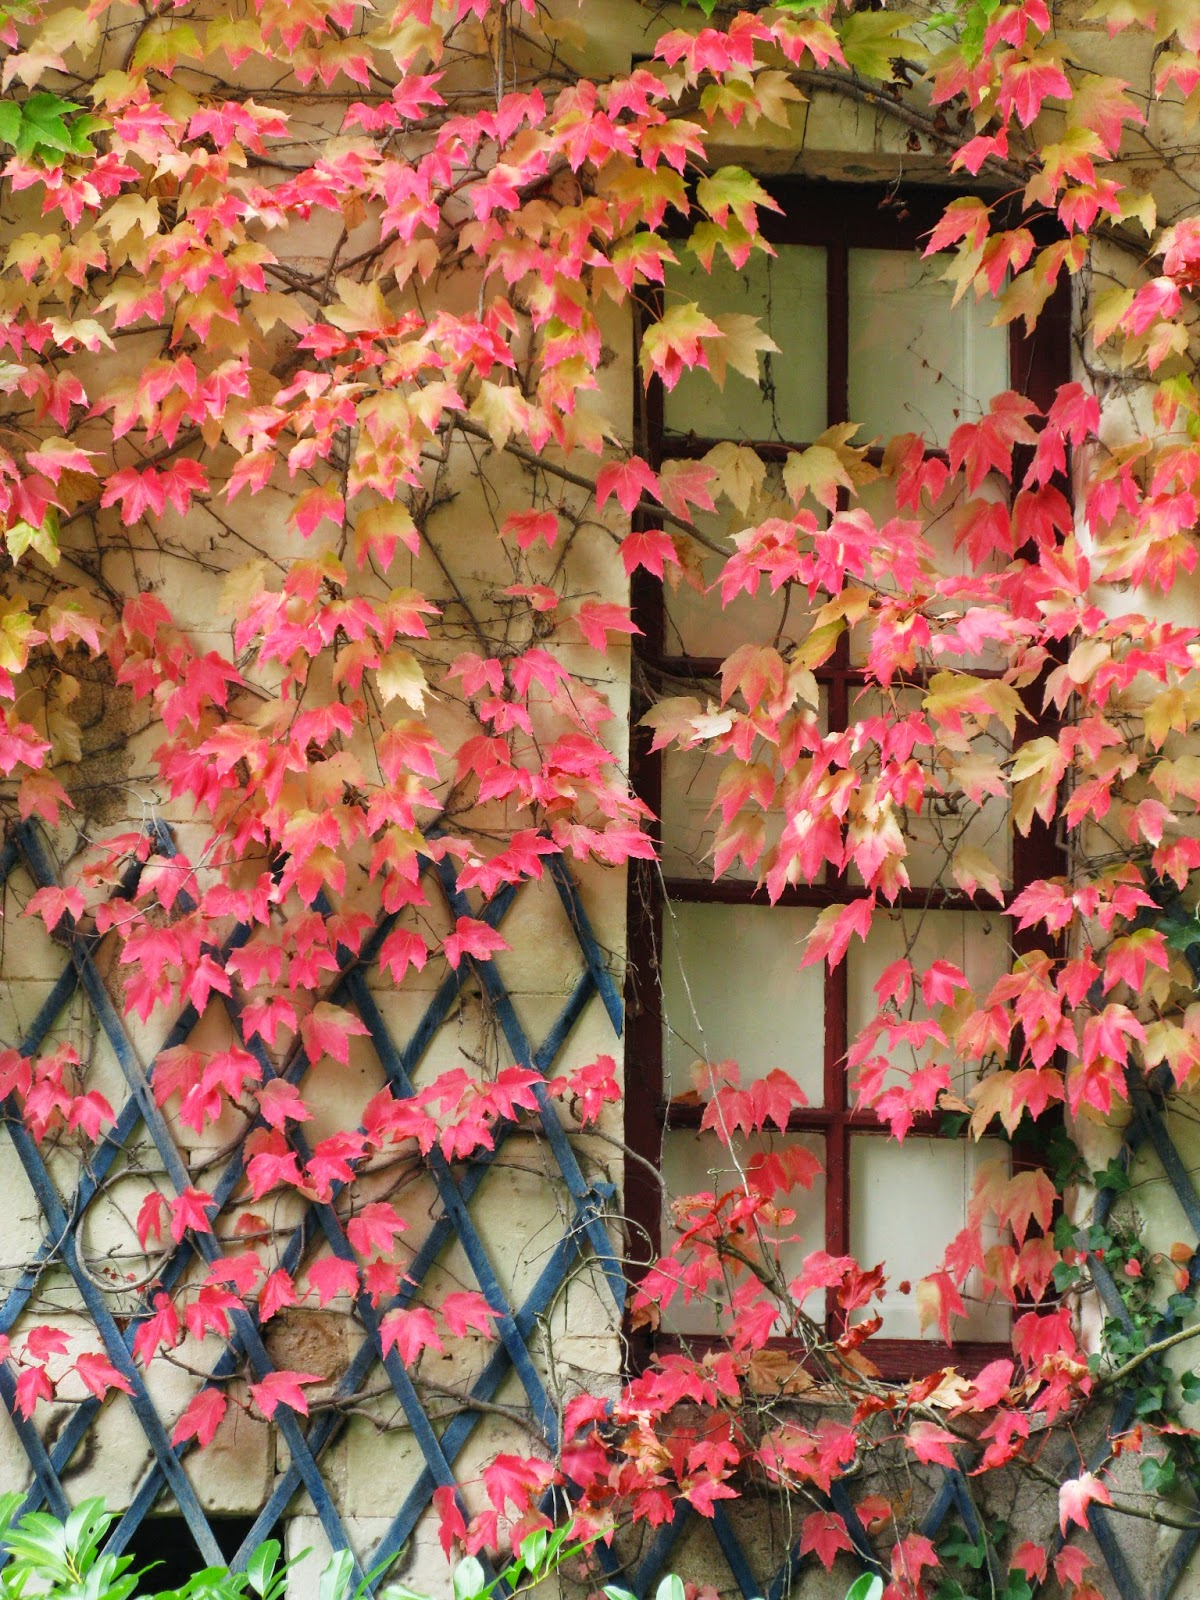 reddish hues in autumn leaves on wall at Chateau de Chenonceau France